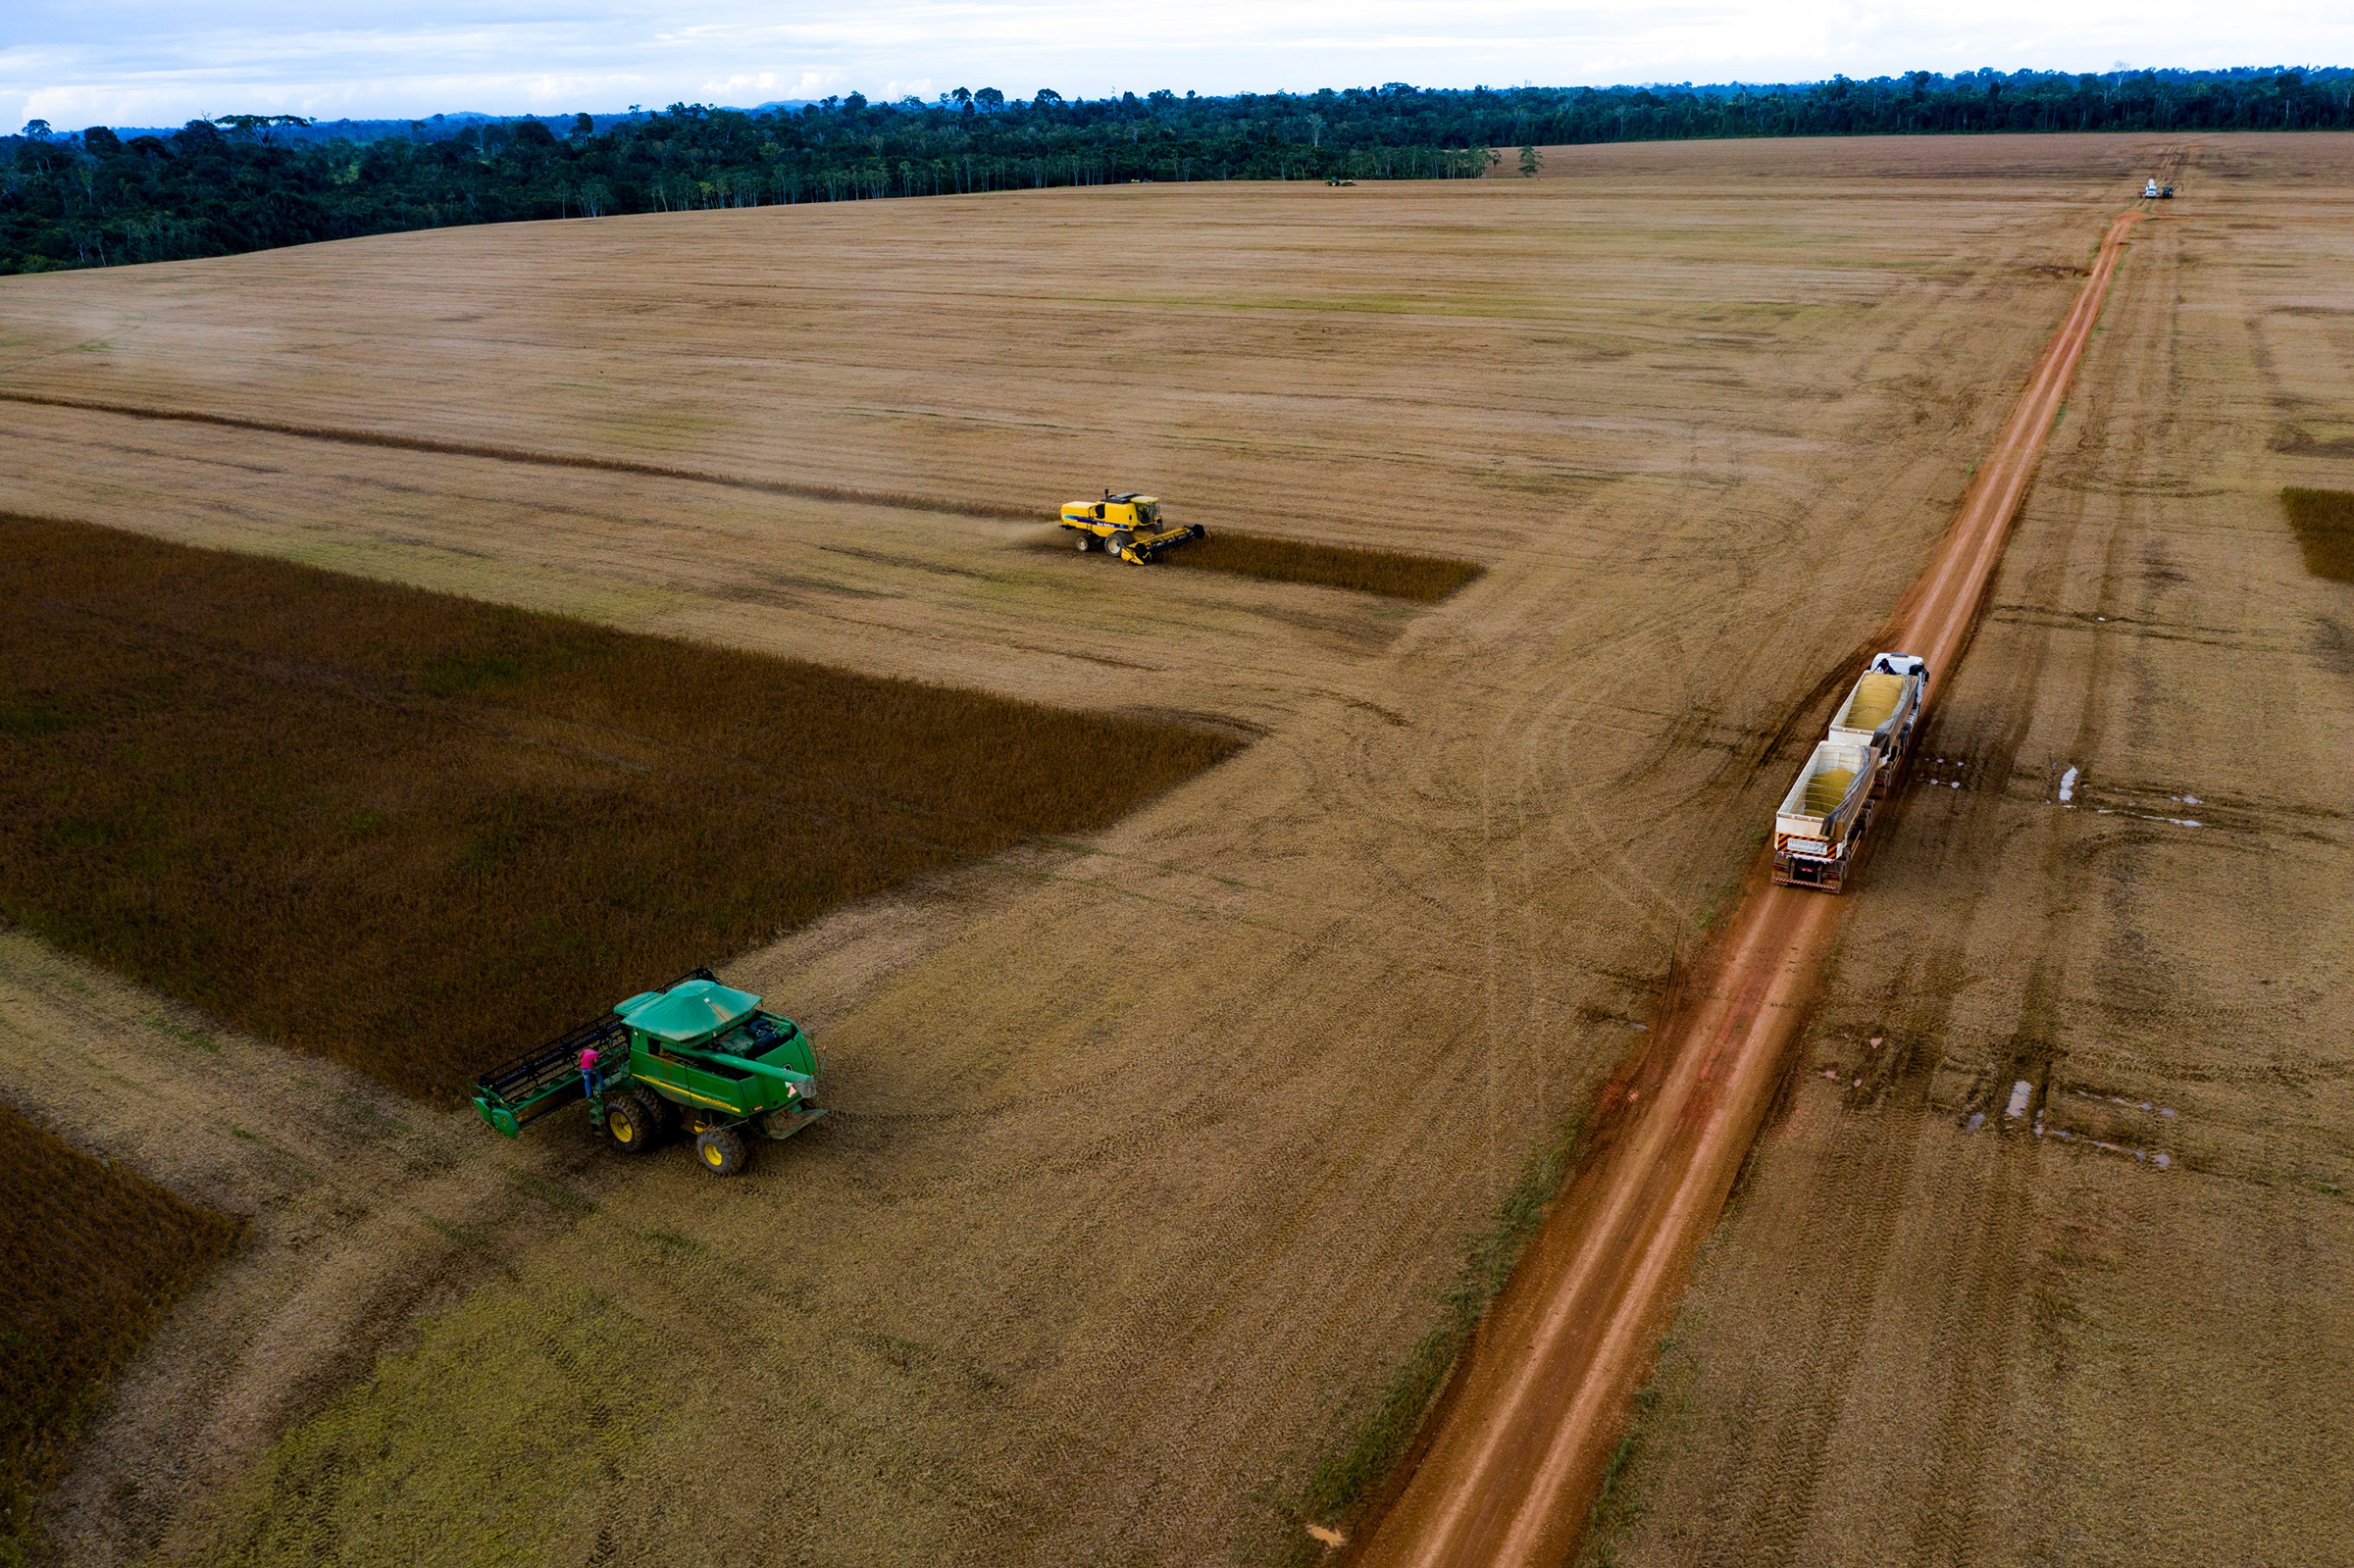 A soybean plantation in Rondonia, Brazil. The country exports 80% of its soybean crop to China